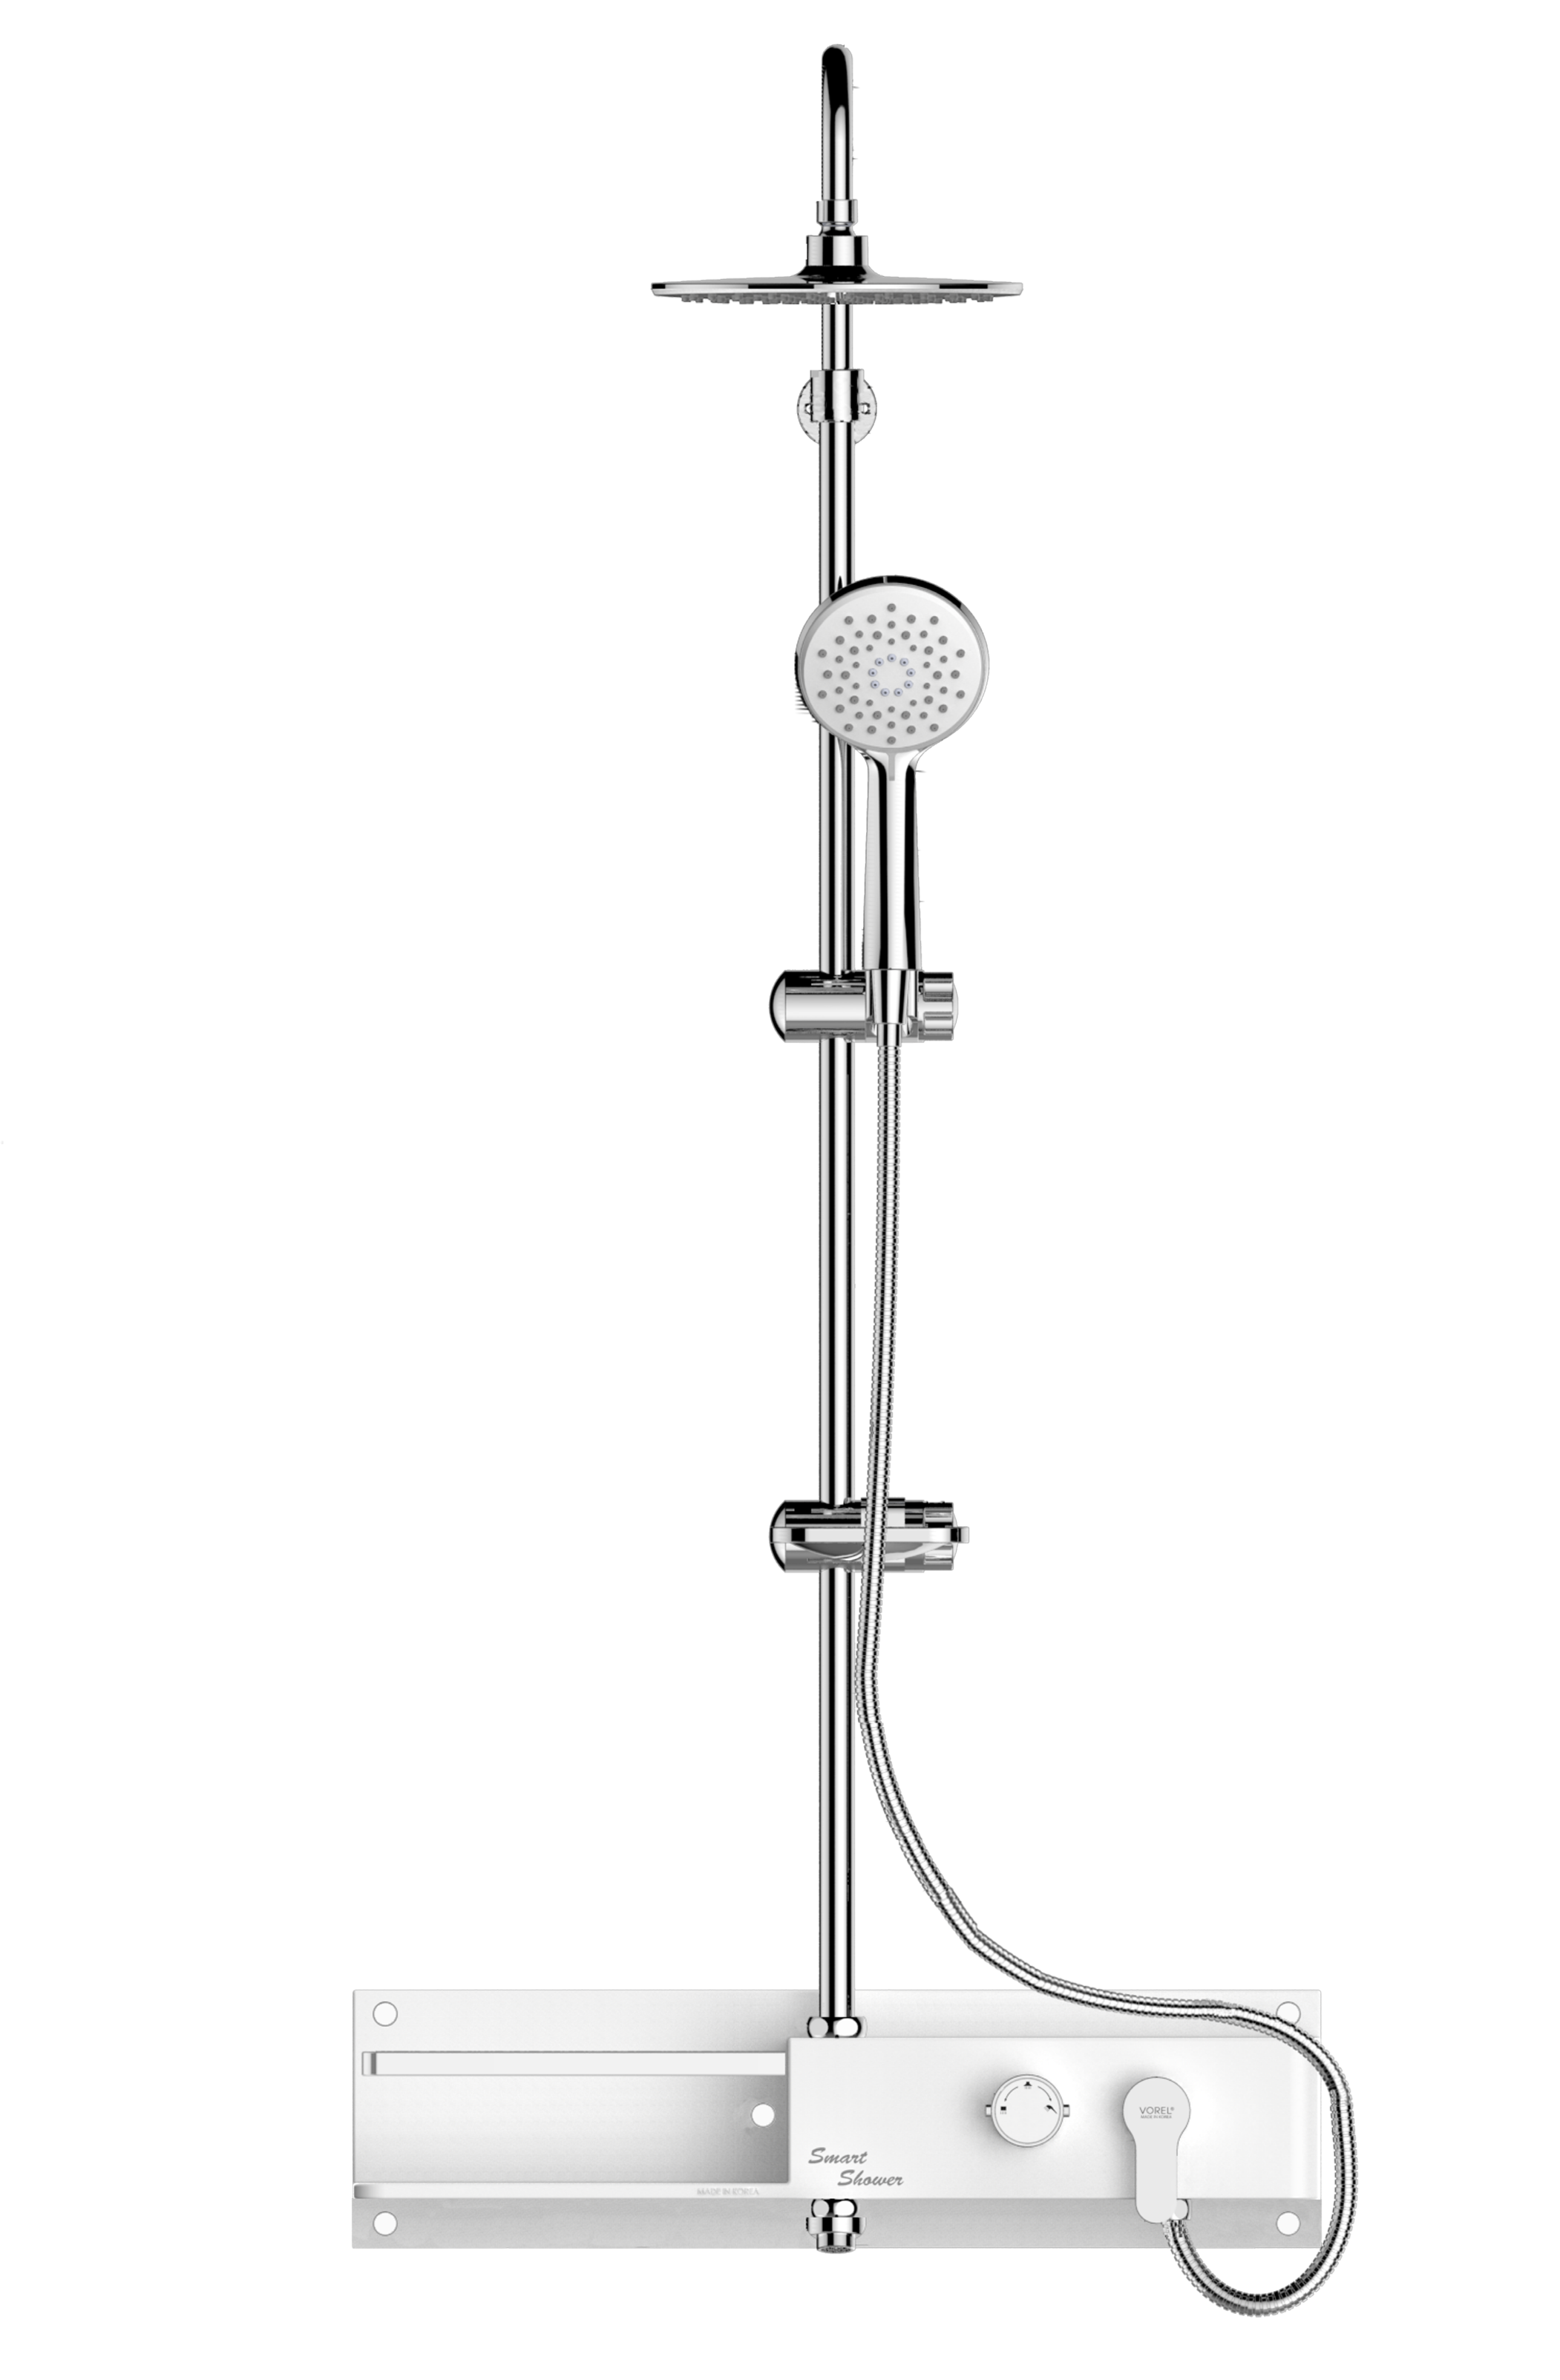 EH-4000 - Smart Shower